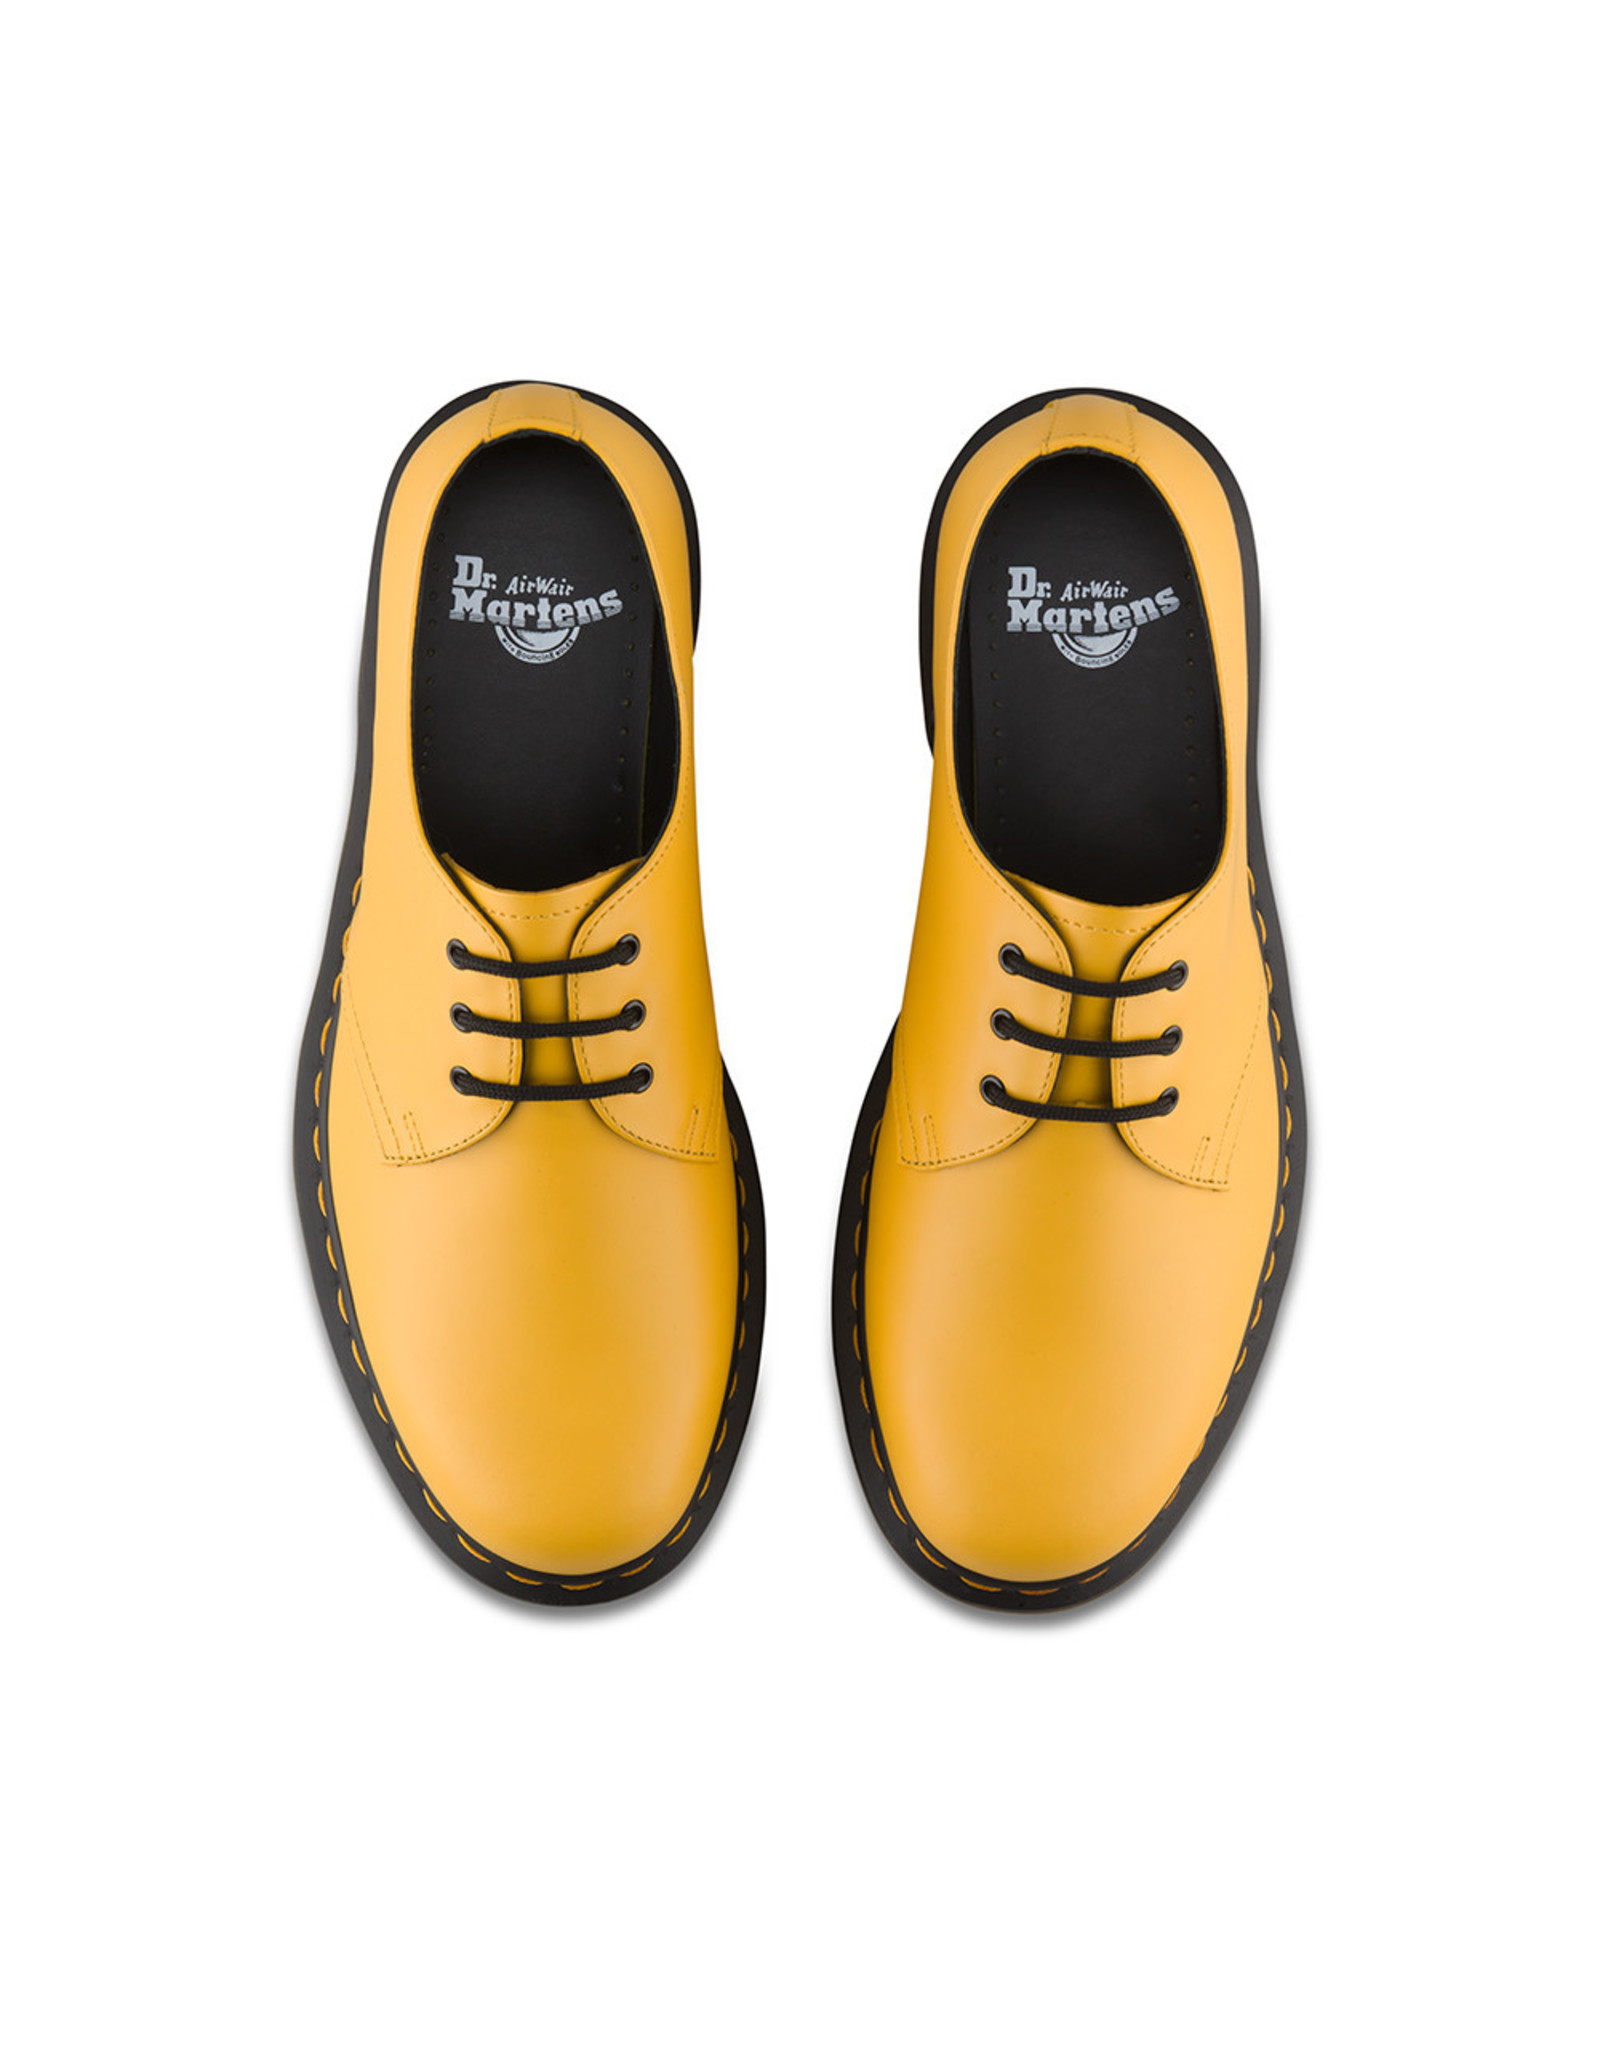 DR. MARTENS 1461 SMOOTH YELLOW 301Y-R24616700